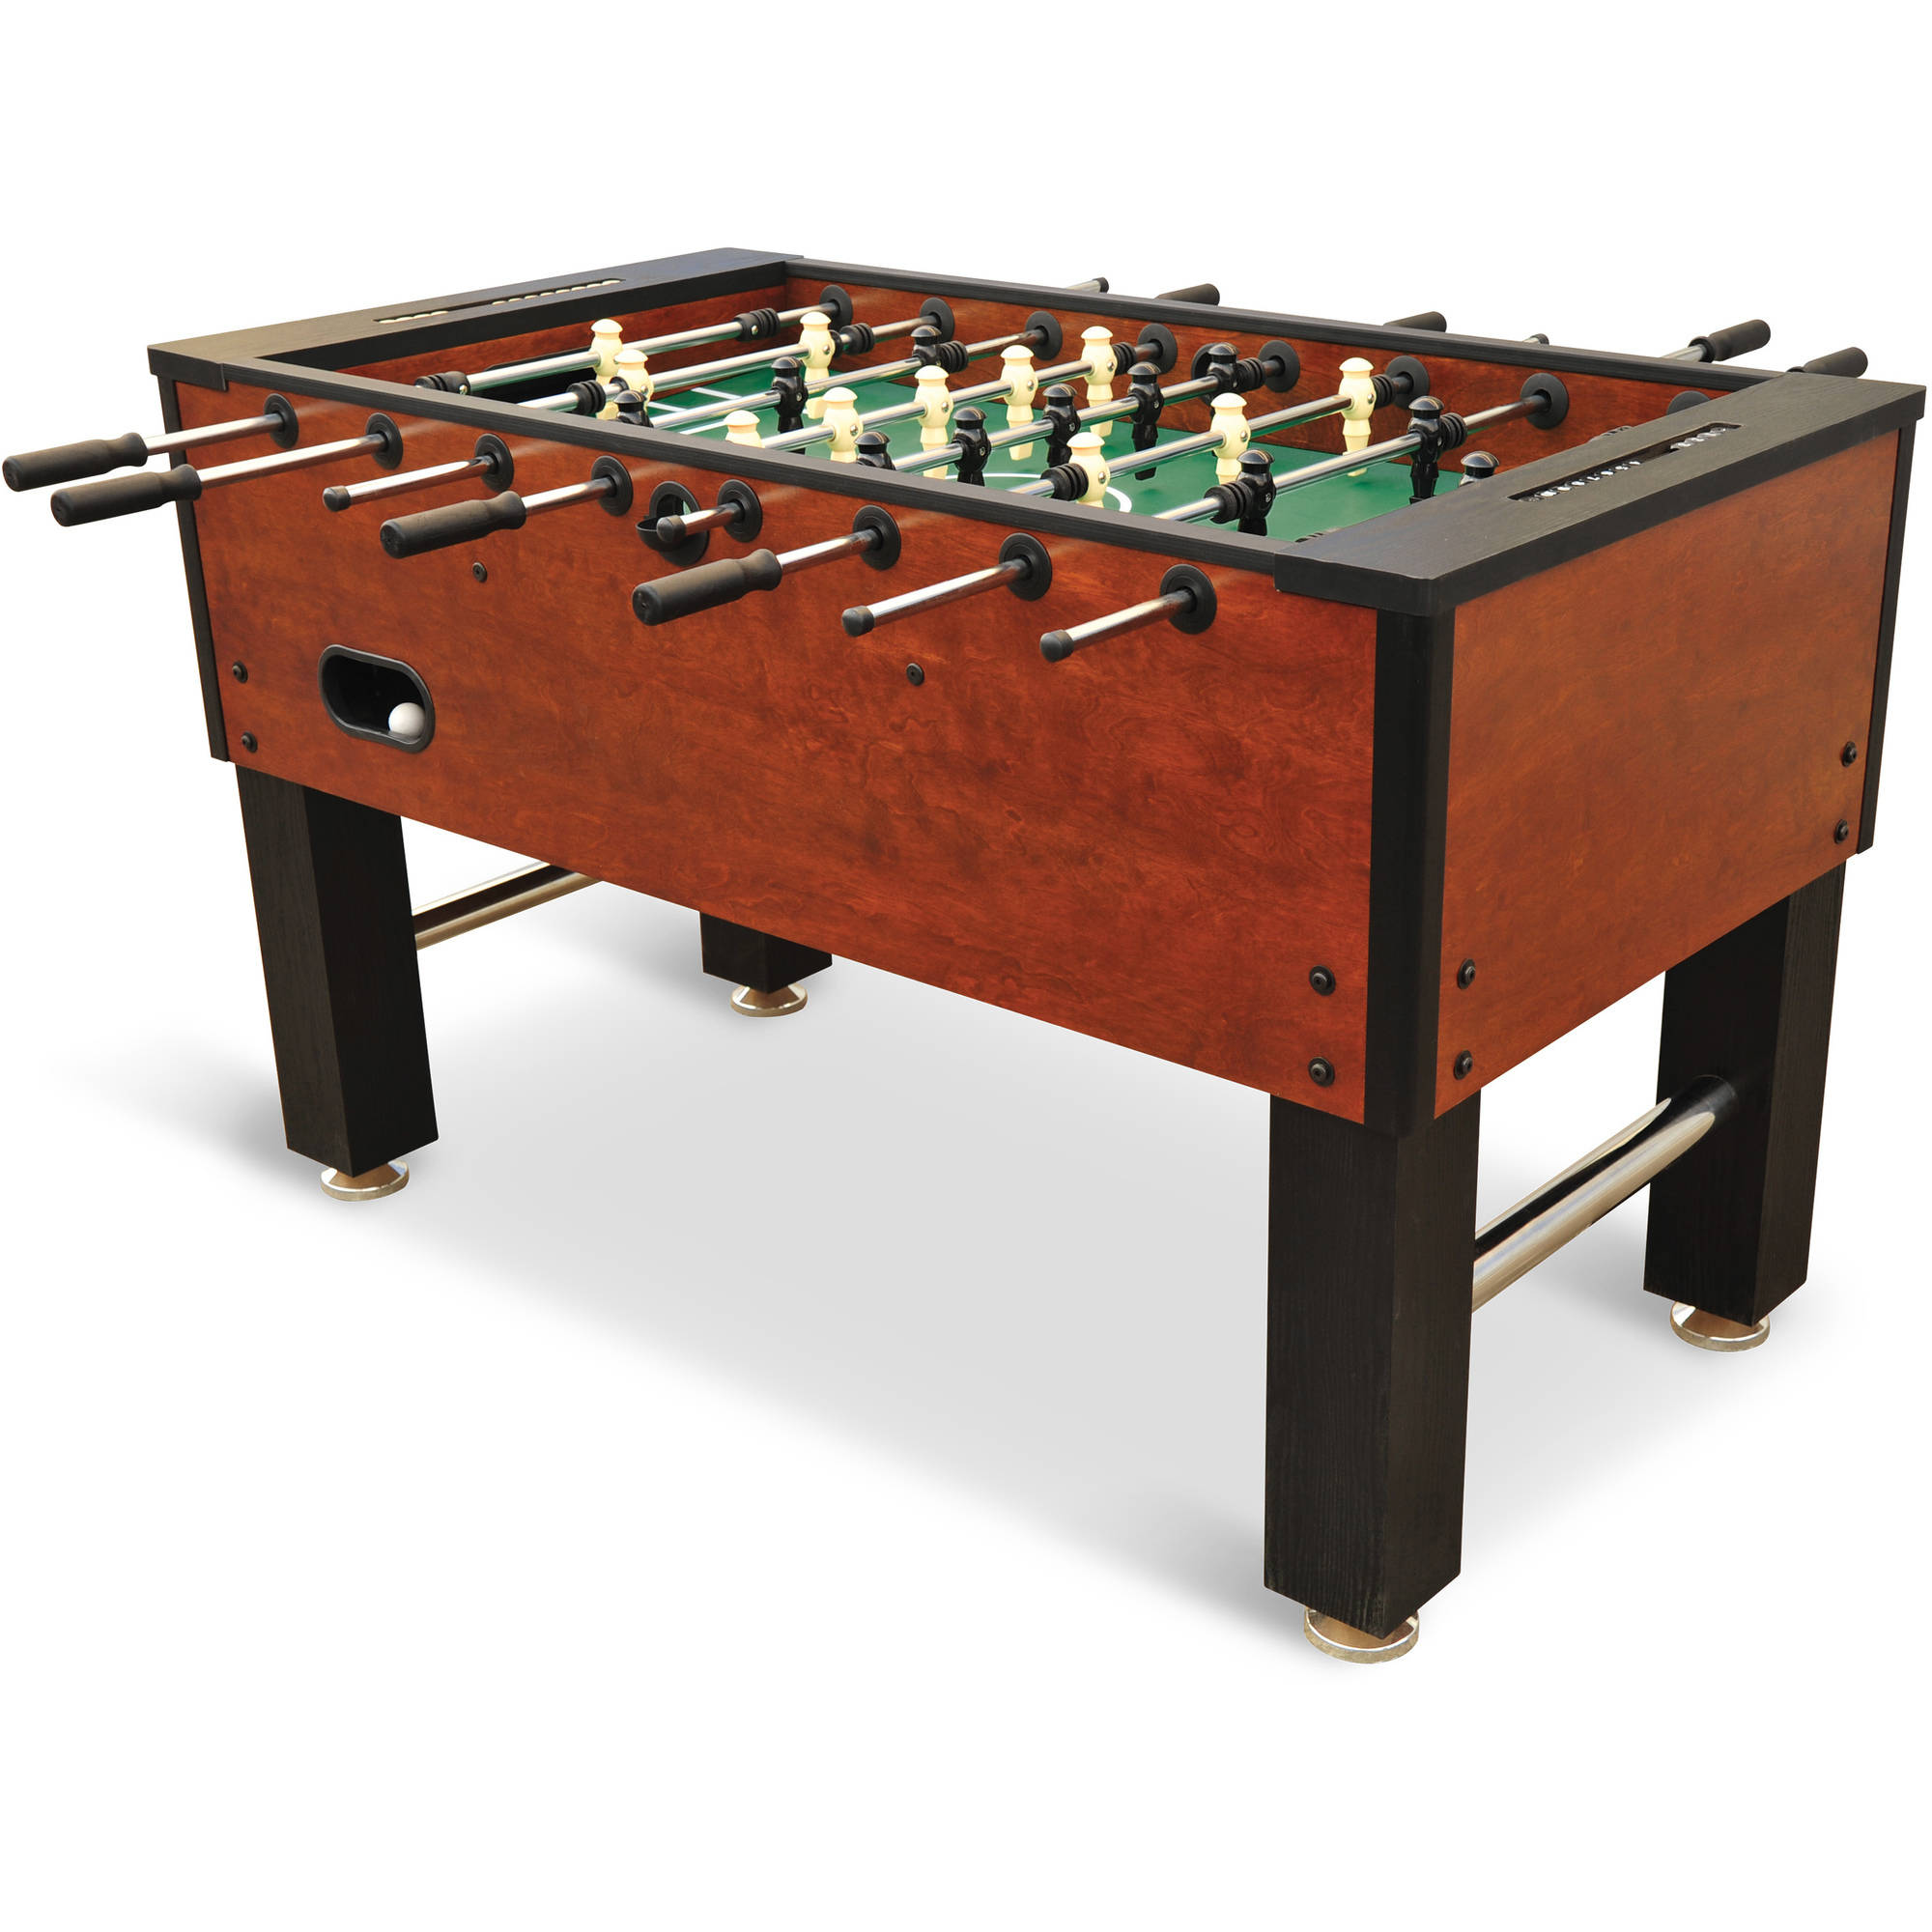 EastPoint Sports Premier Cup Foosball Table by Eastpoint Sports